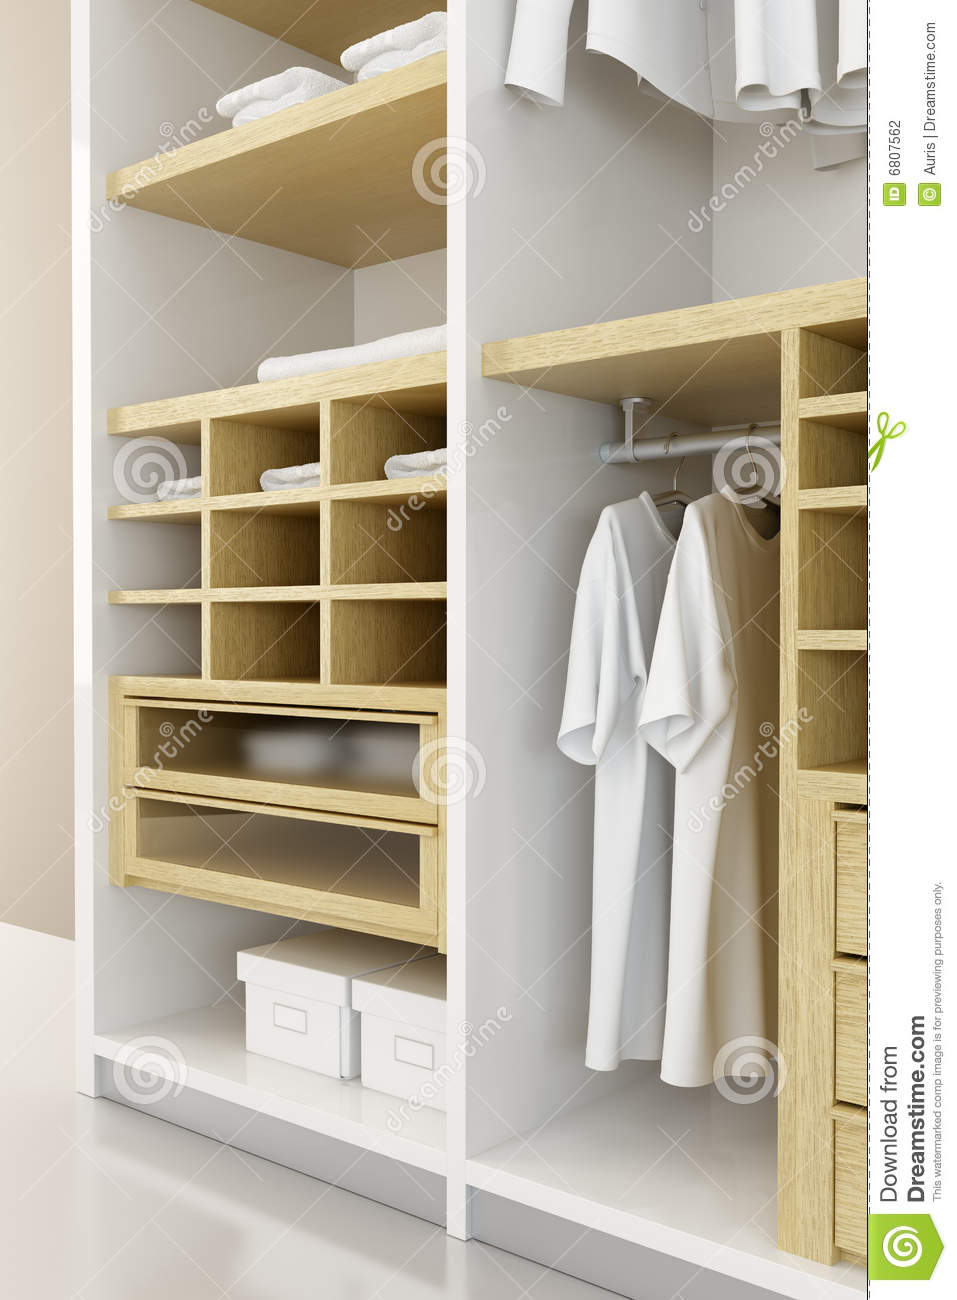 High Quality Inside The Closet 3d Rendering. Open, Dress.